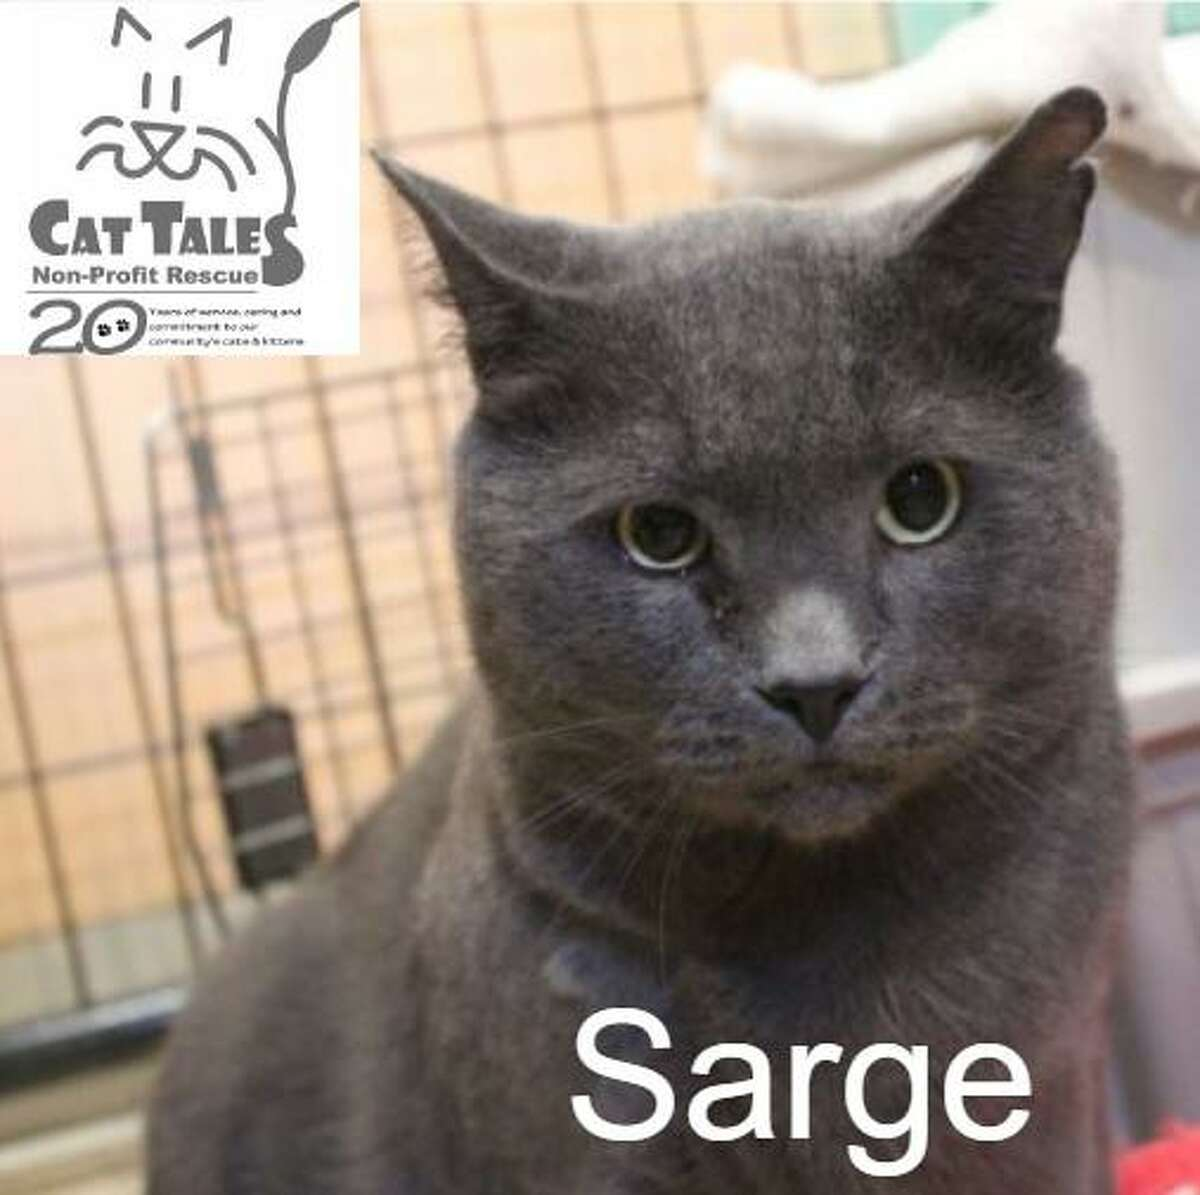 """Sarge is a gray male, about 3 years old. He says, """"I was found as a stray by Animal Control with a bite wound. I am very, very sweet and affectionate. I love to be held and to be petted but I can become overstimulated and may nip if you keep petting me when I don't want the attention. Please take my cues so you know when I've had enough. I am an independent boy who does need my space at times. I am FIV+. Humans cannot catch this and it is very difficult for other cats to get (blood needs to be exchanged). I am healthy and can live just as long as any cat without FIV. I do have a food allergy so please only feed me what Cat Tales says (no fish). Please adopt me."""" Visit www.CatTalesCT.org/cats/Sarge, call 860-344-9043, or email info@CatTalesCT.org. Watch our TV commercial: https://youtu.be/Y1MECIS4mIc"""